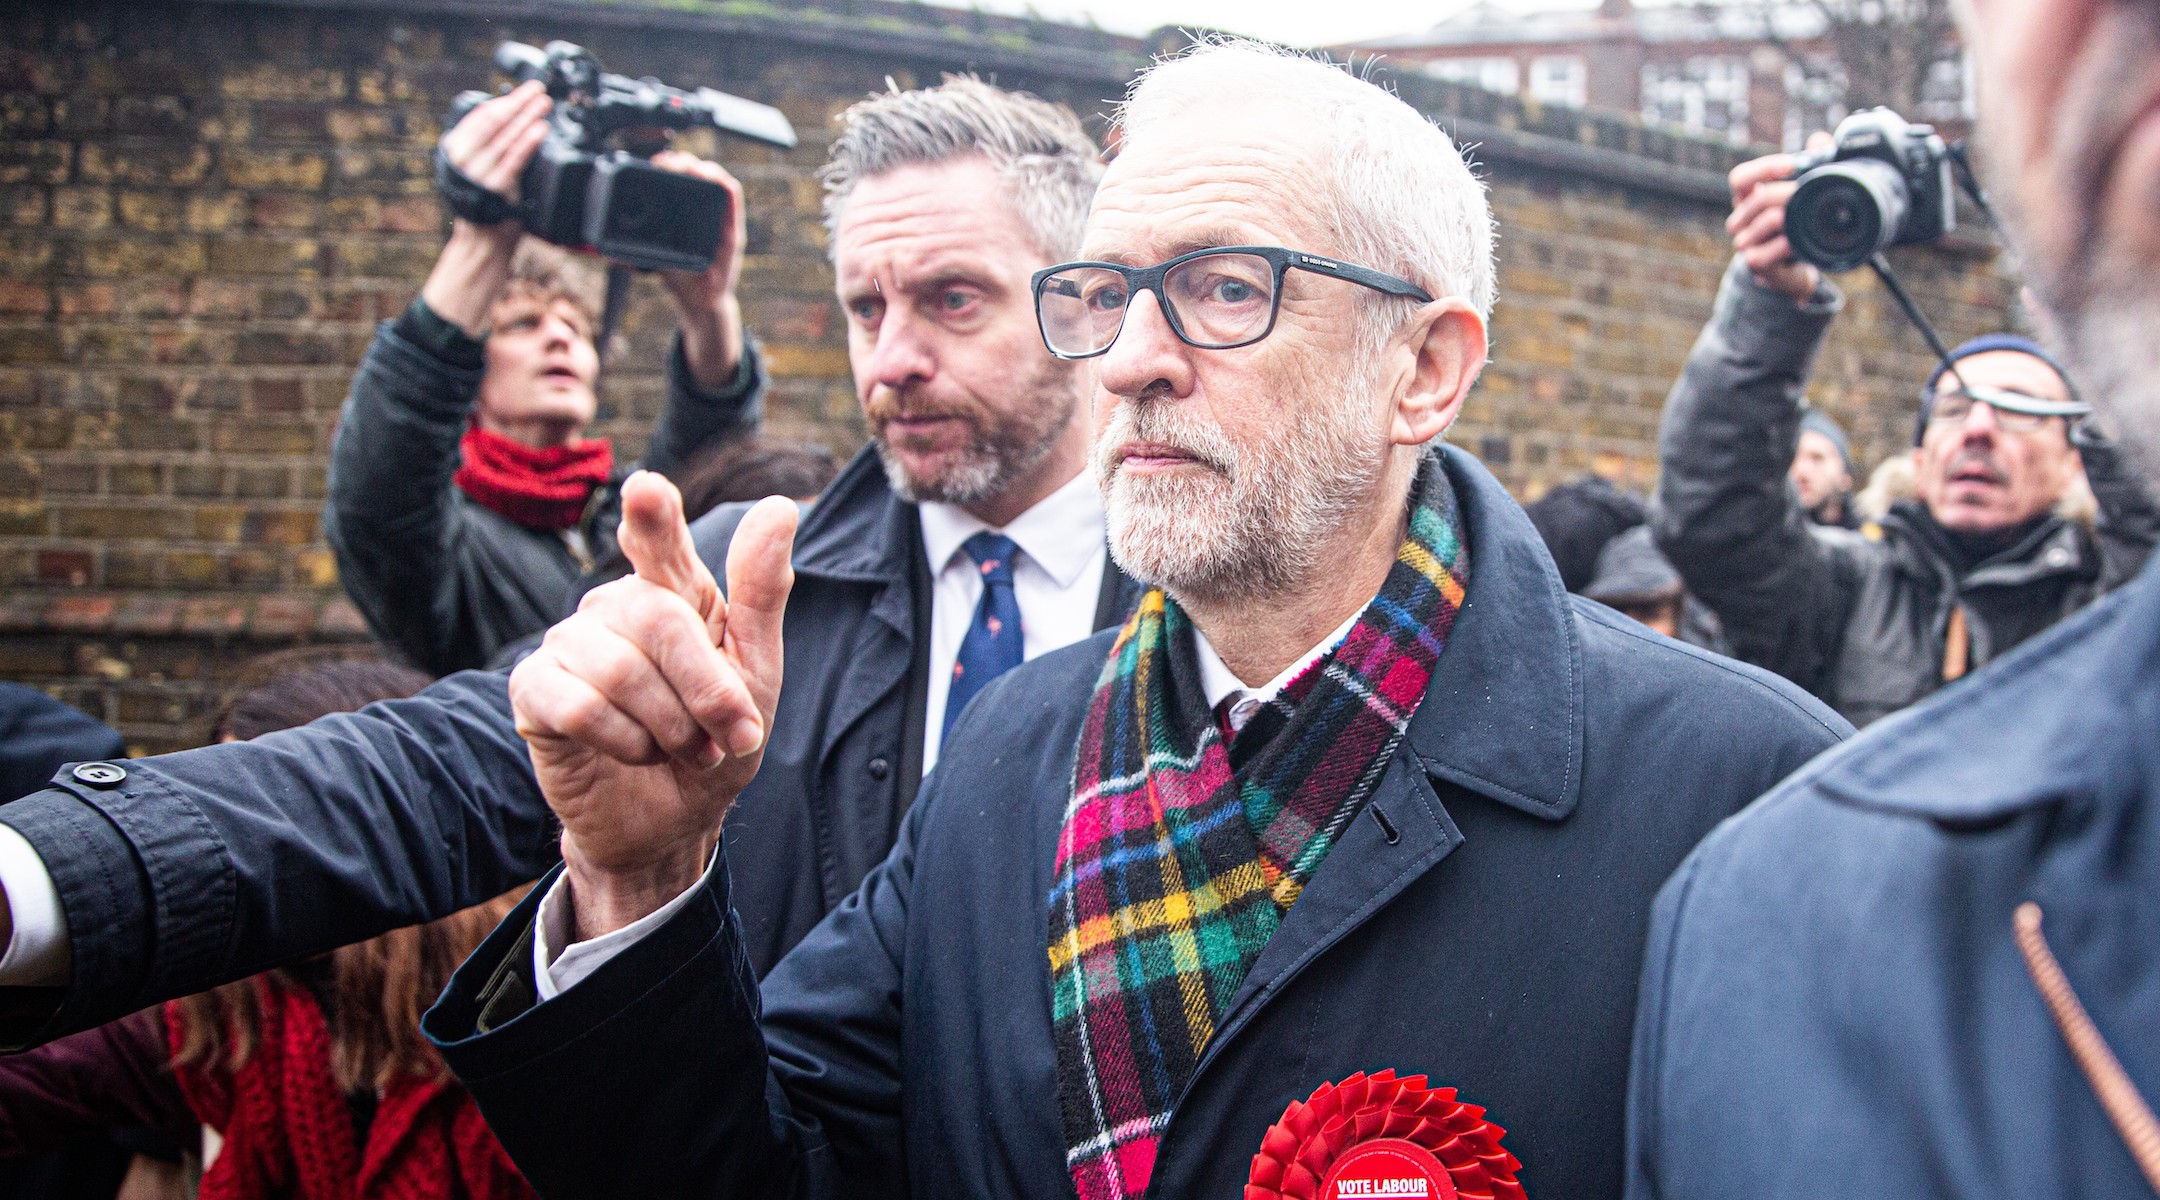 Labour Party Leader Jeremy Corbyn leaves a polling station after voting in the general elections in London, Dec. 12, 2019. (Yunus Dalgic/Anadolu Agency via Getty Images)